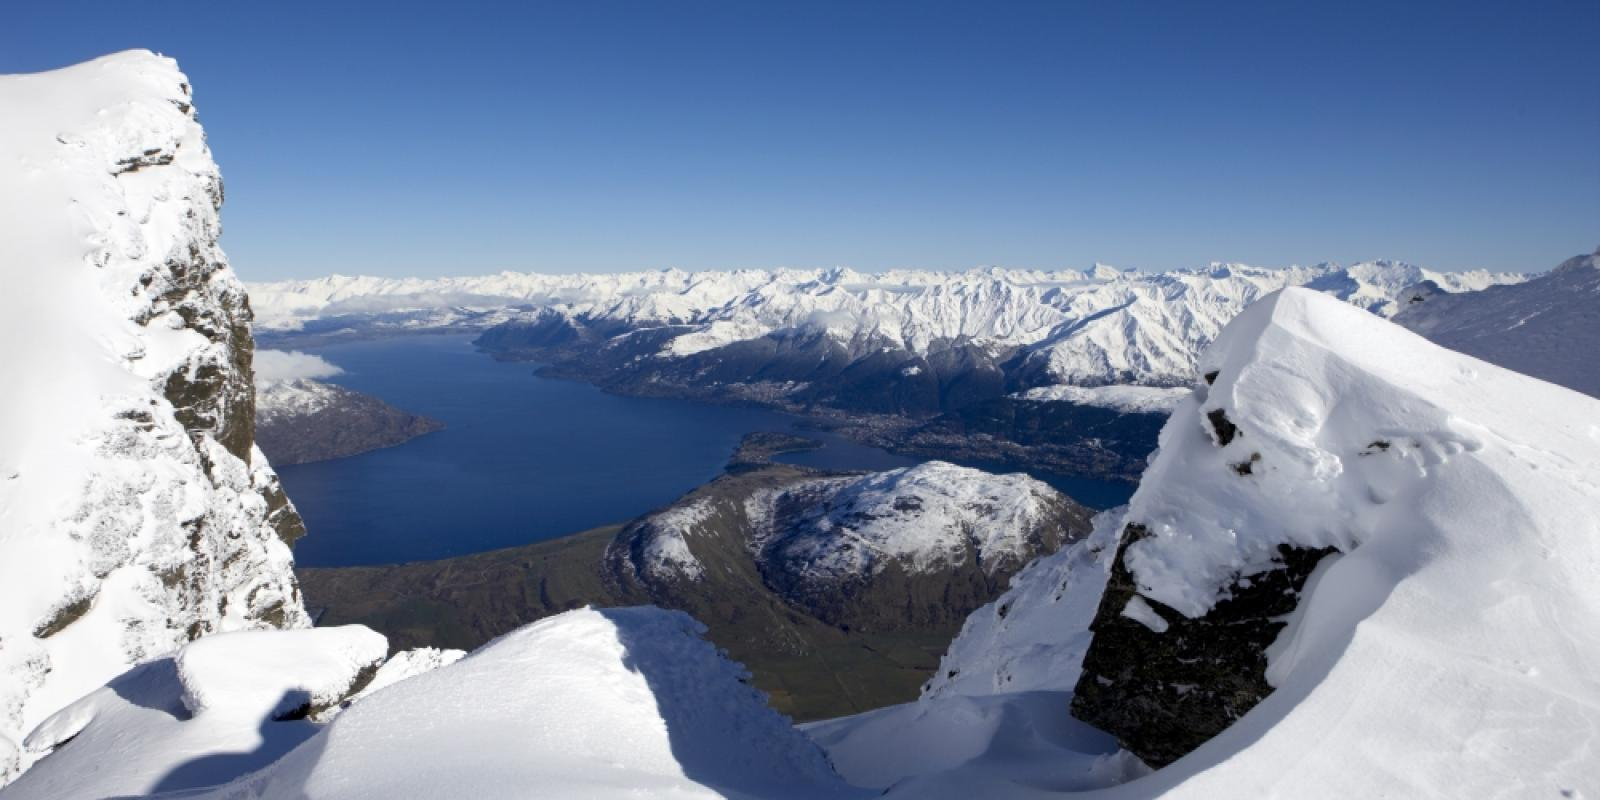 Views of Queenstown from The Remarkables Ski Area